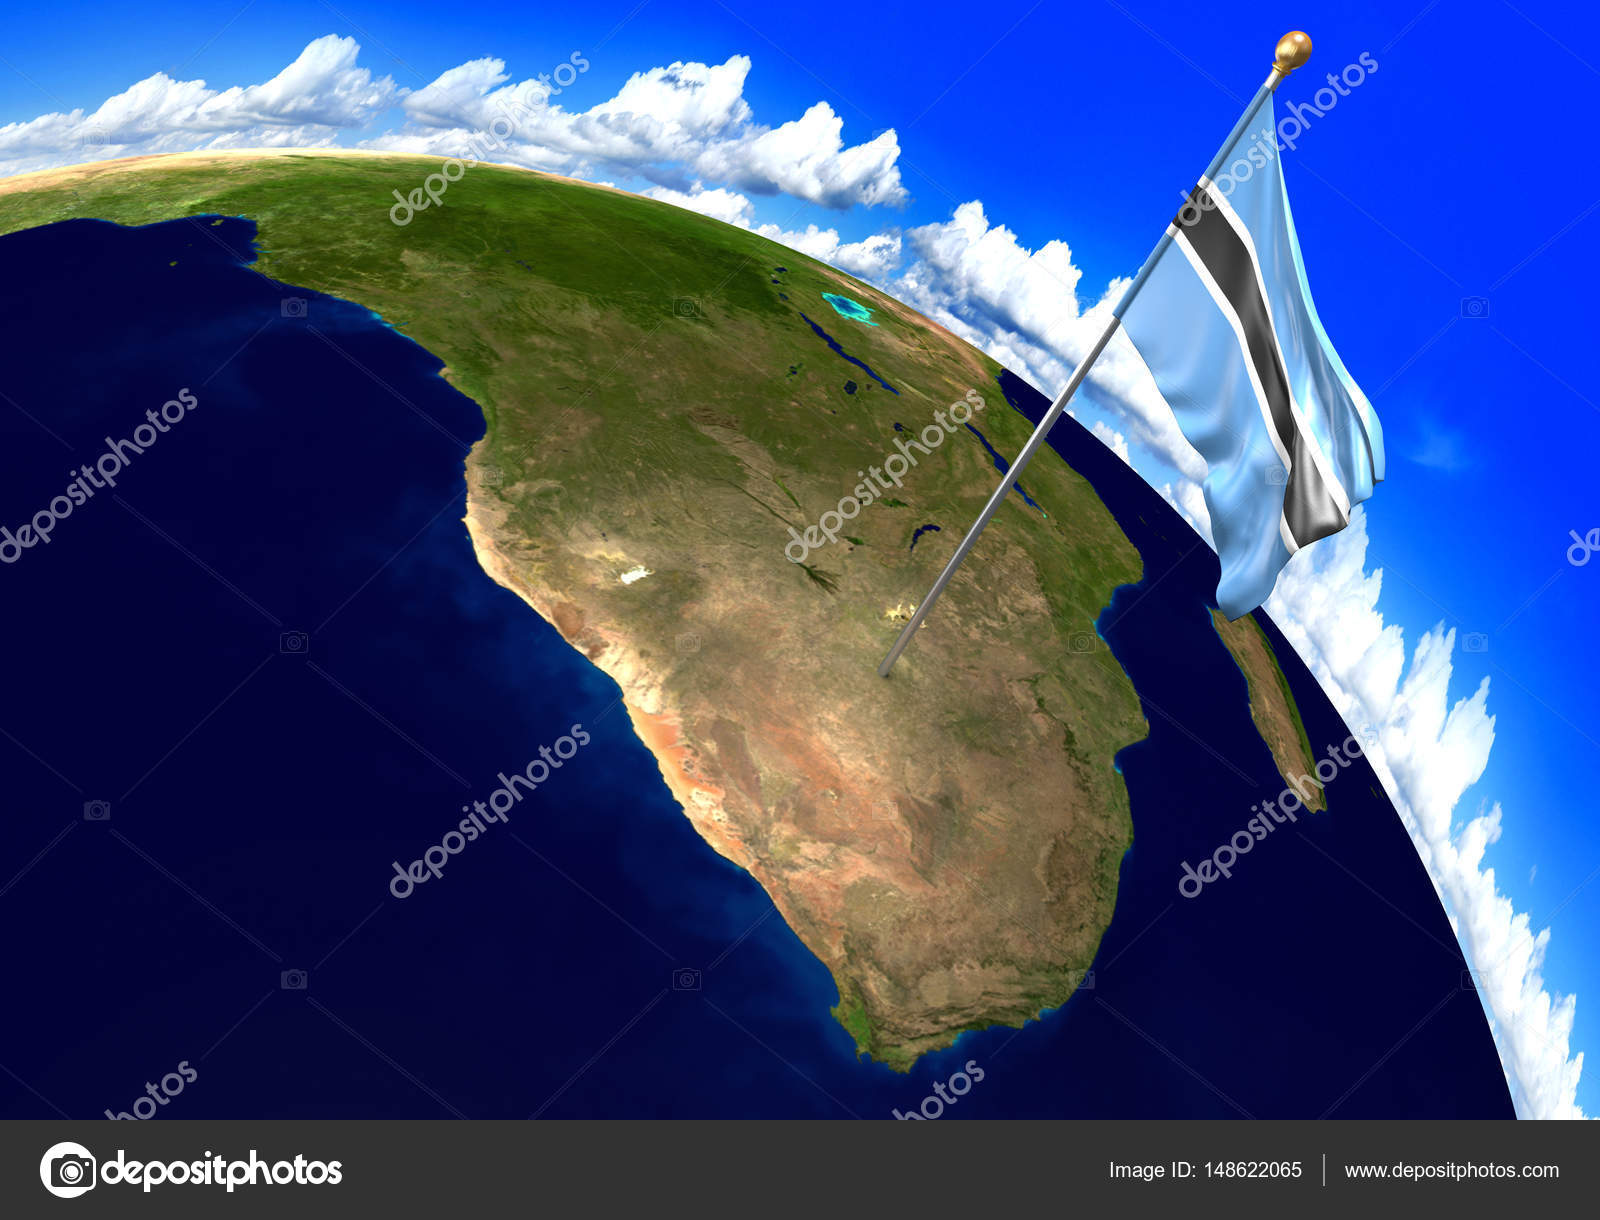 Botswana national flag marking the country location on world map 3D